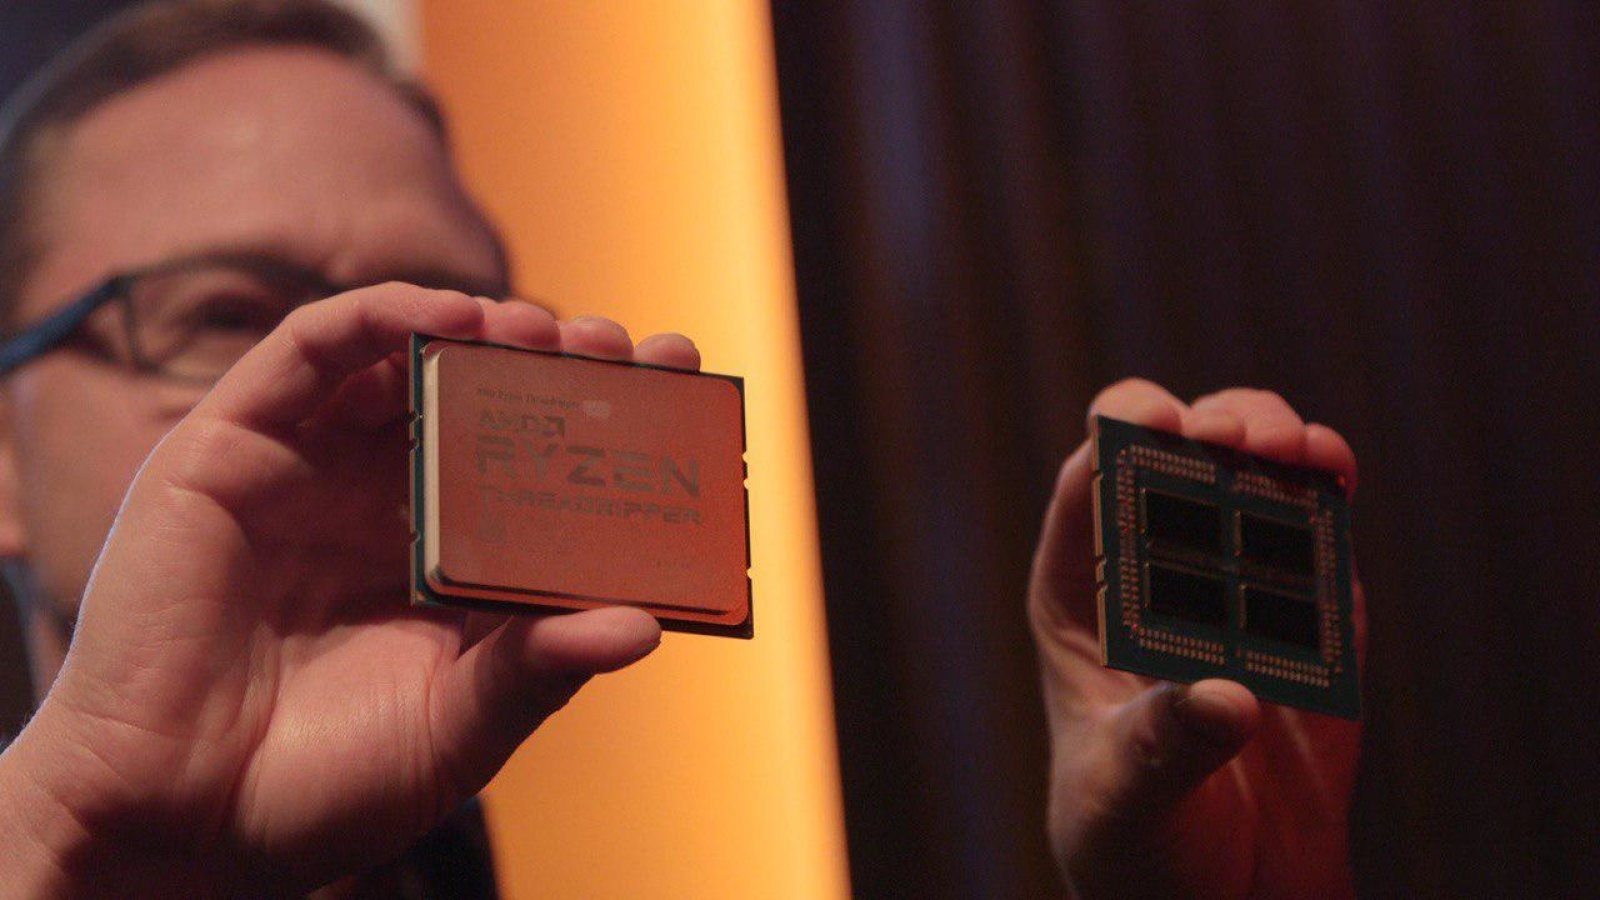 AMD's 12- and 24-core Threadripper 2 CPUs arrive October 29th | DeviceDaily.com